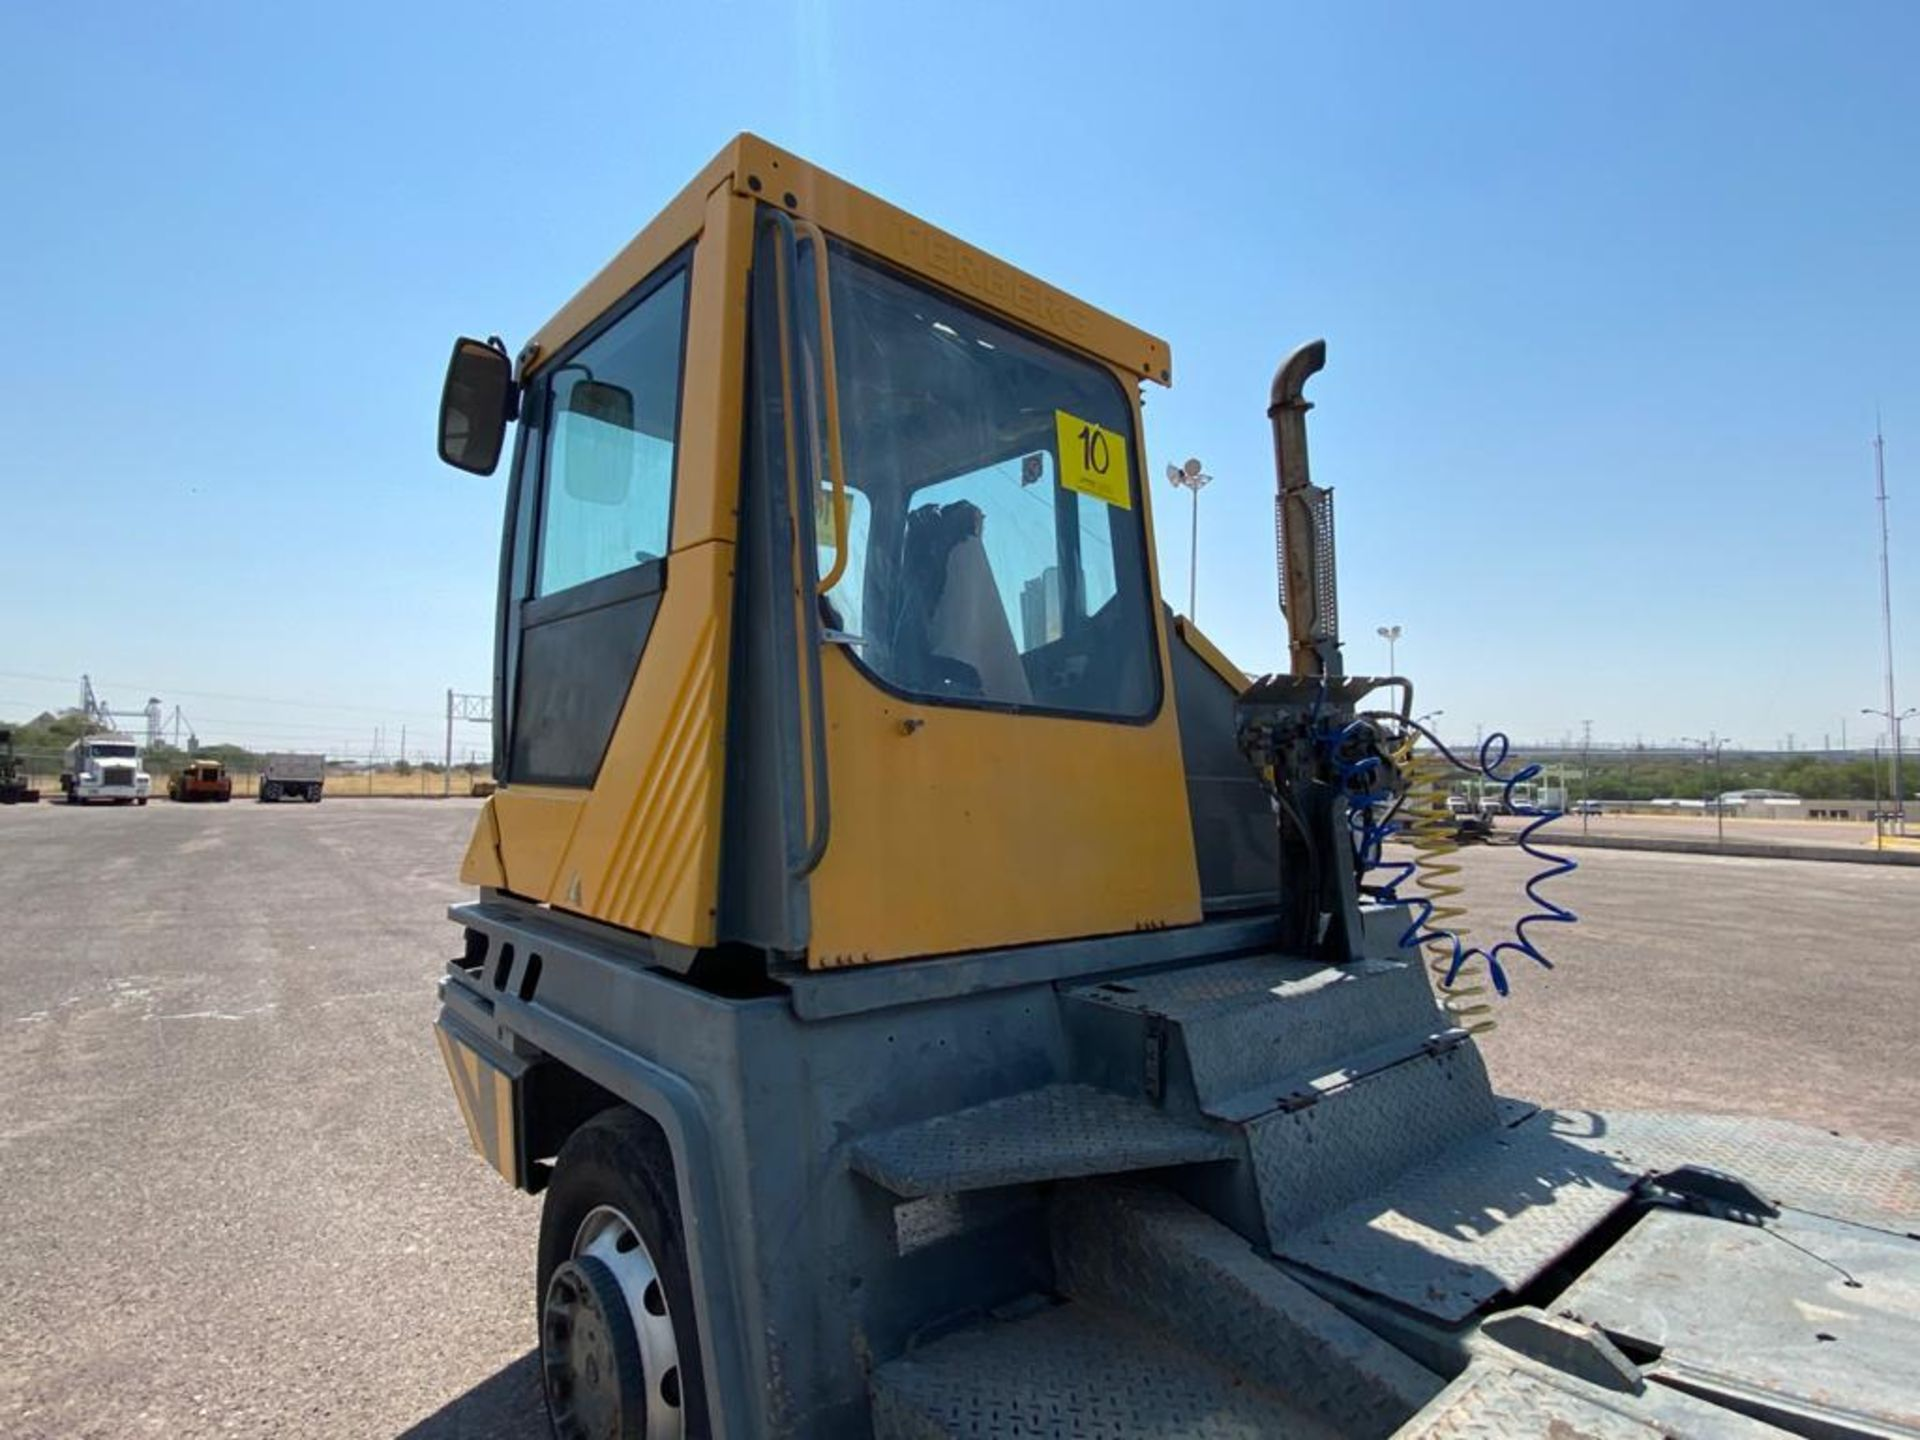 Terberg Capacity 2002 Terminal Tractor, automatic transmissio - Image 13 of 28